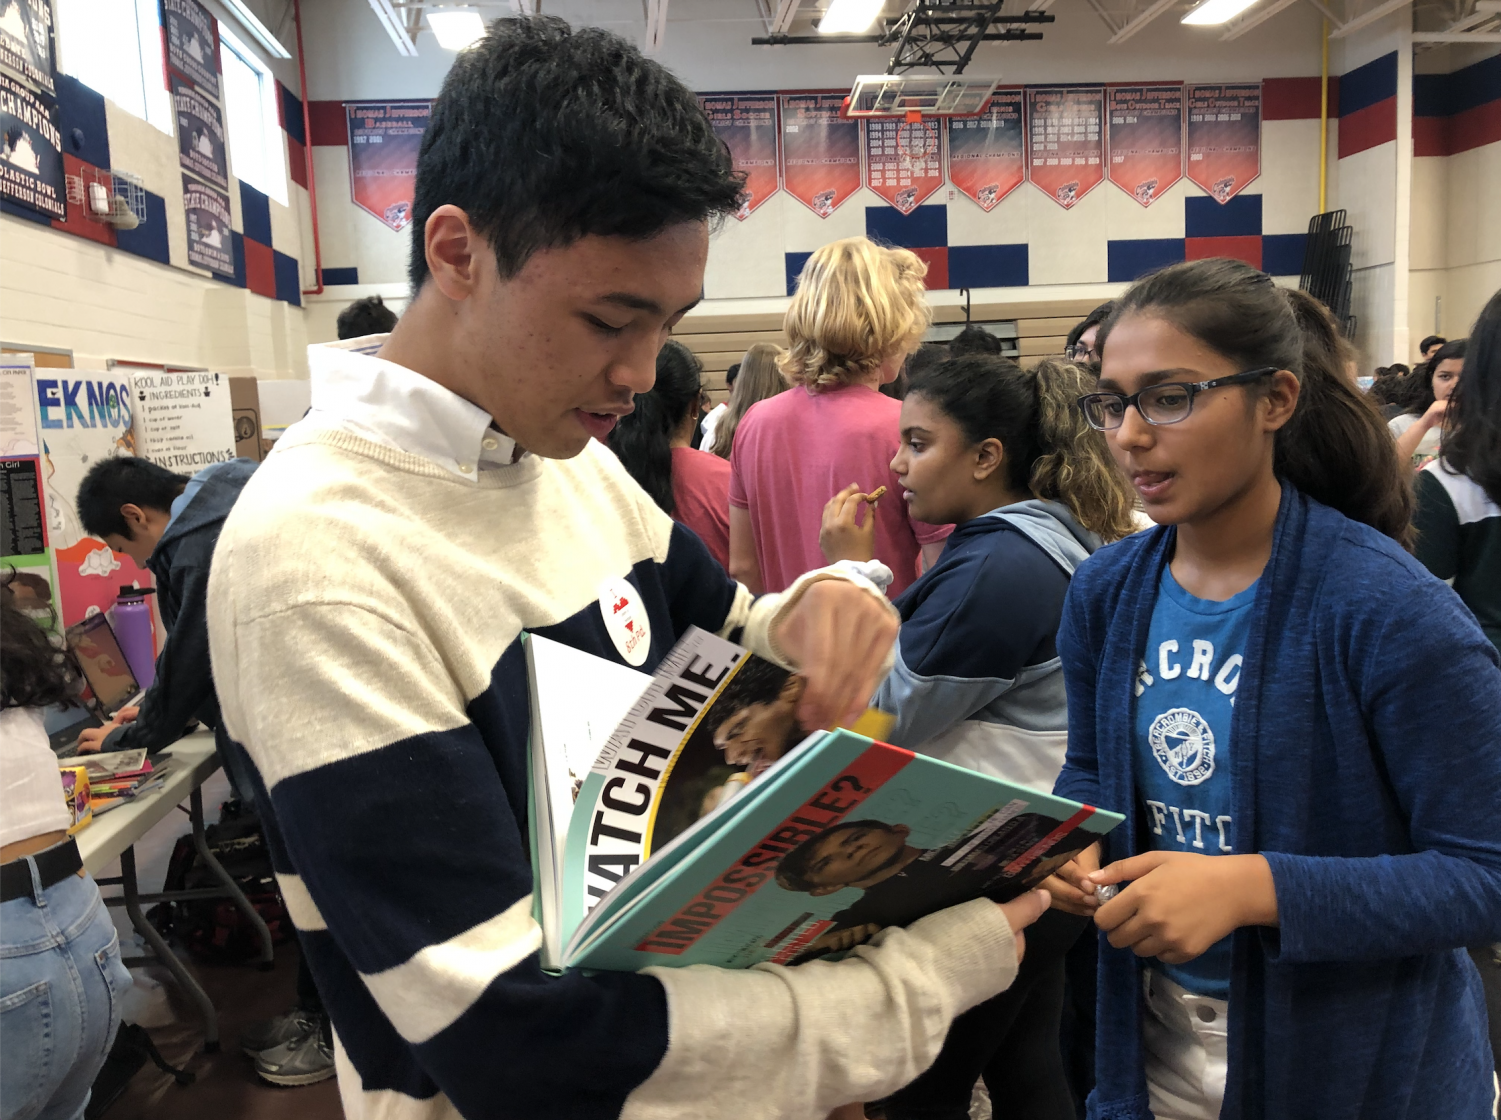 TJ Yearbook Co-Editor-in-Chief Steven Le speaks to freshman Niharika Chandna about joining TJ Media.  Le explains the formatting and student input involved with the publication of the 2018-19 yearbook.